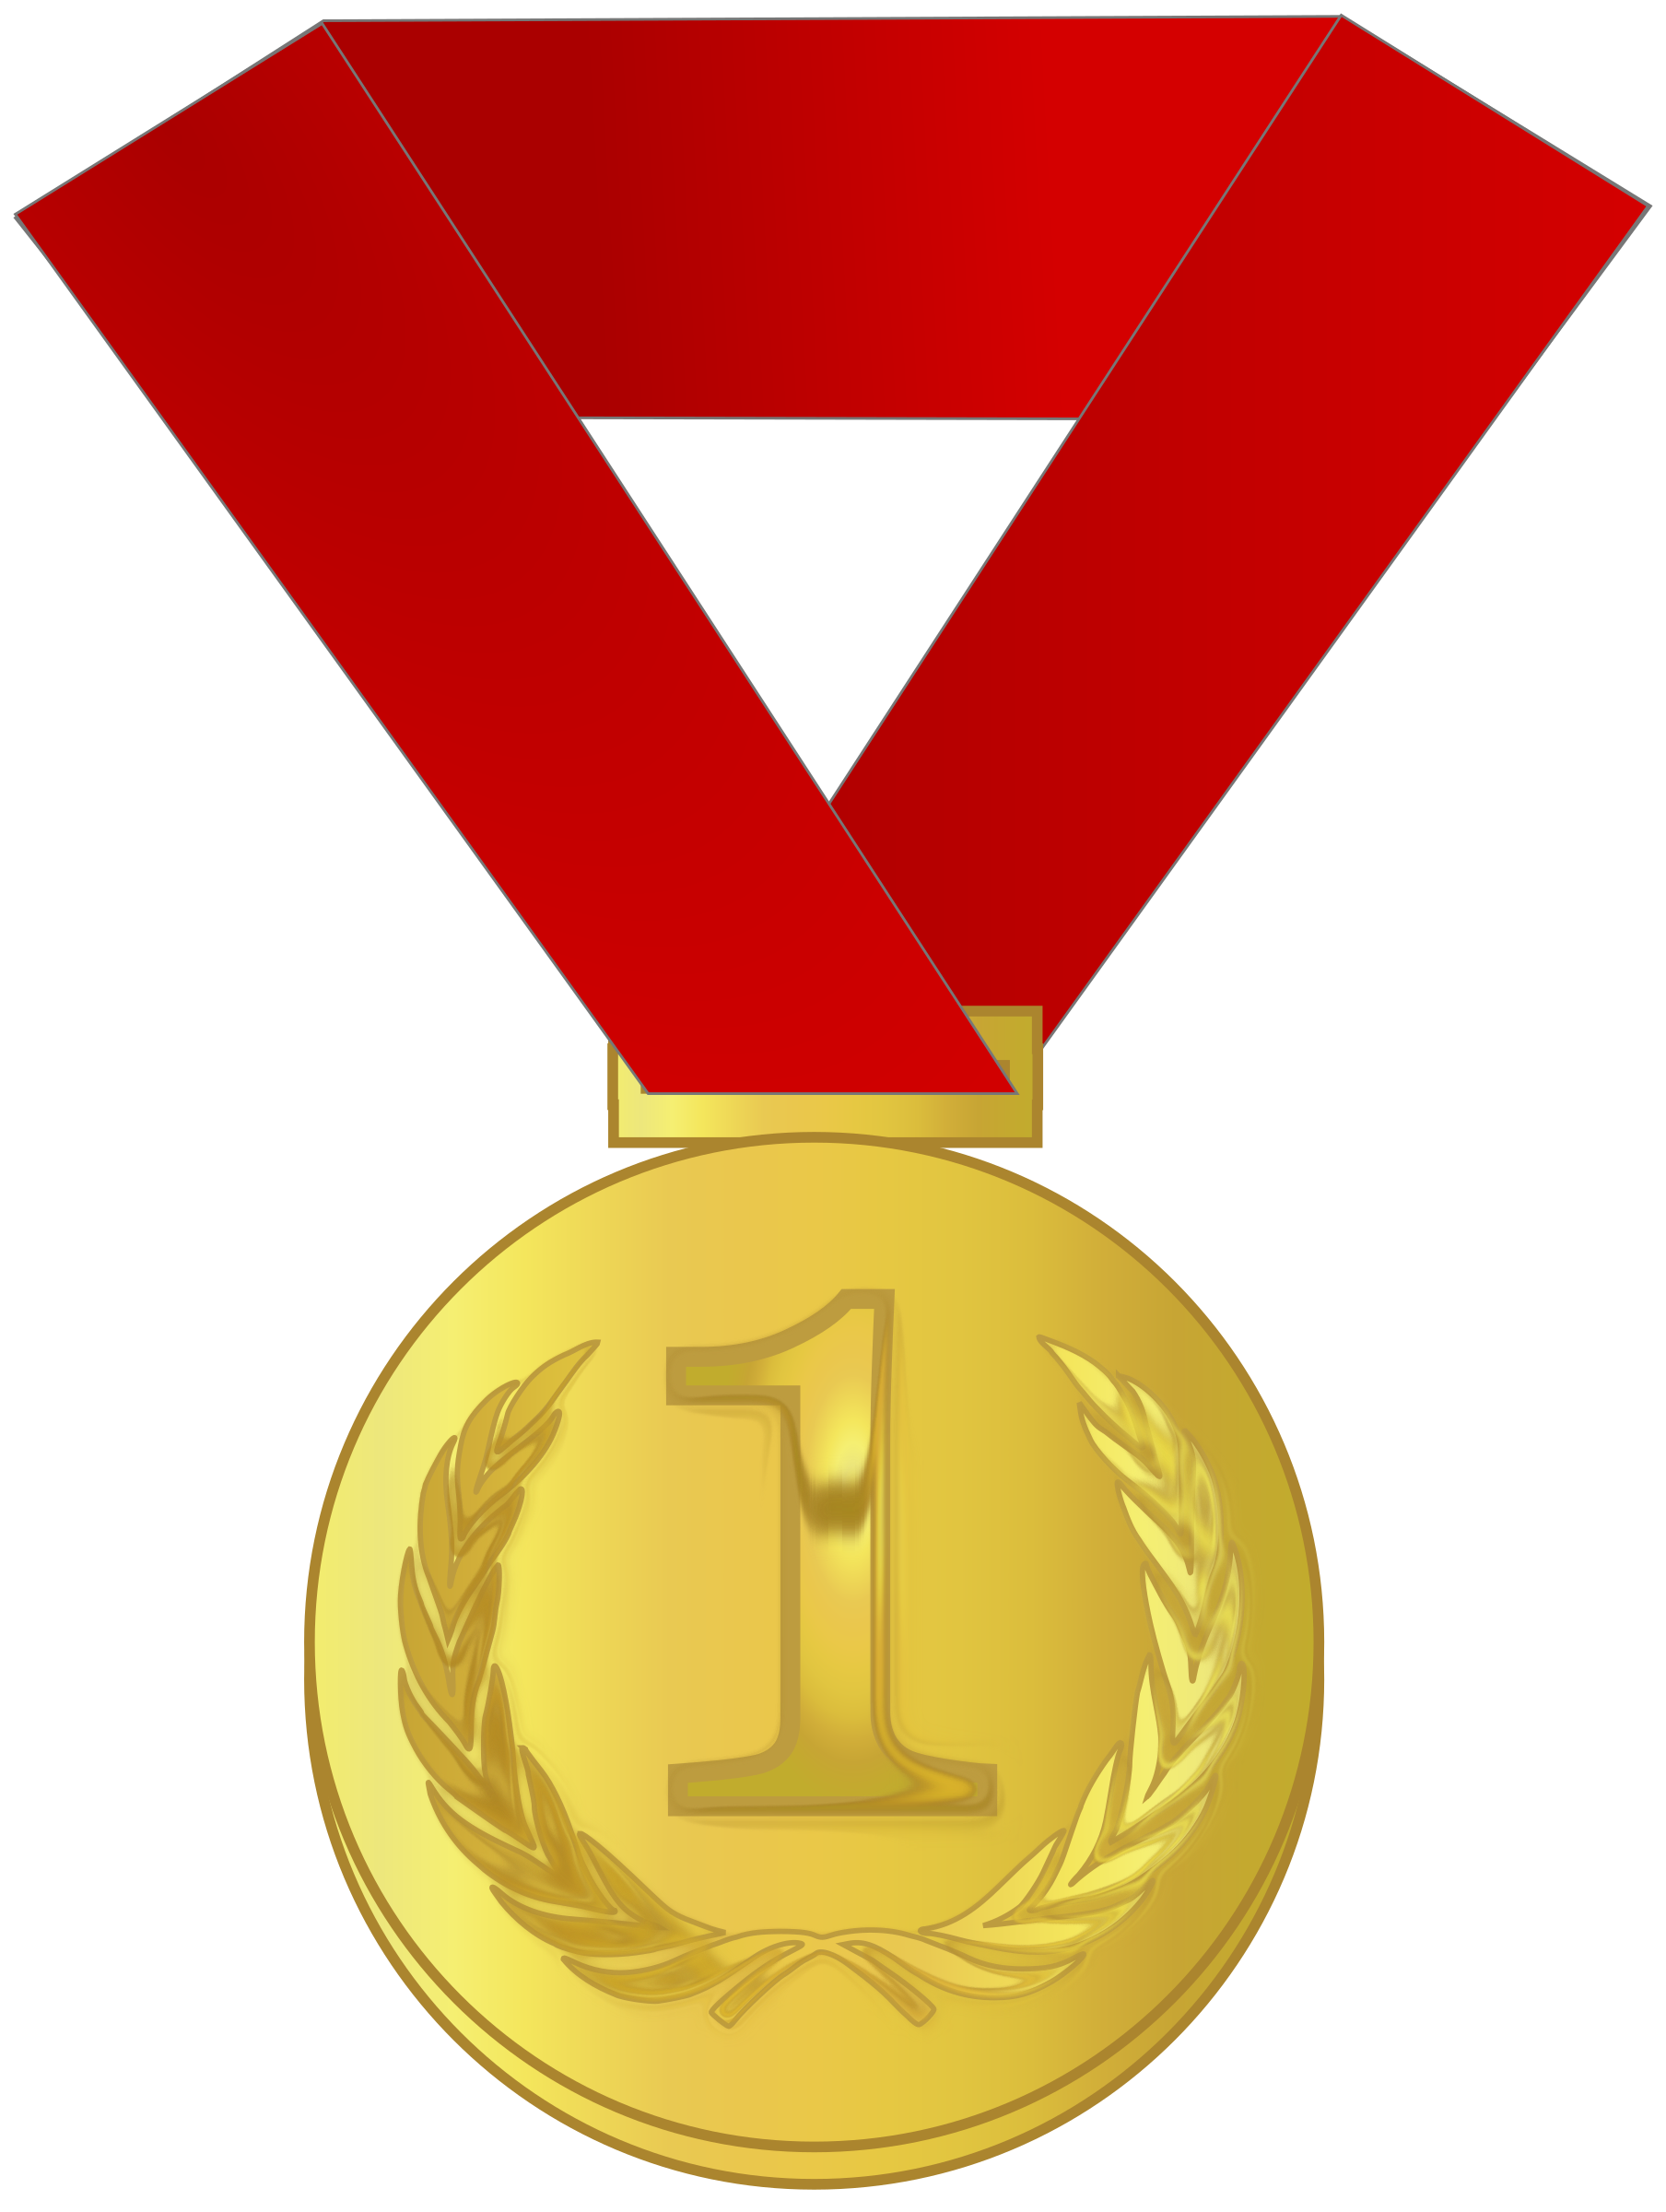 clip art medals free - photo #22